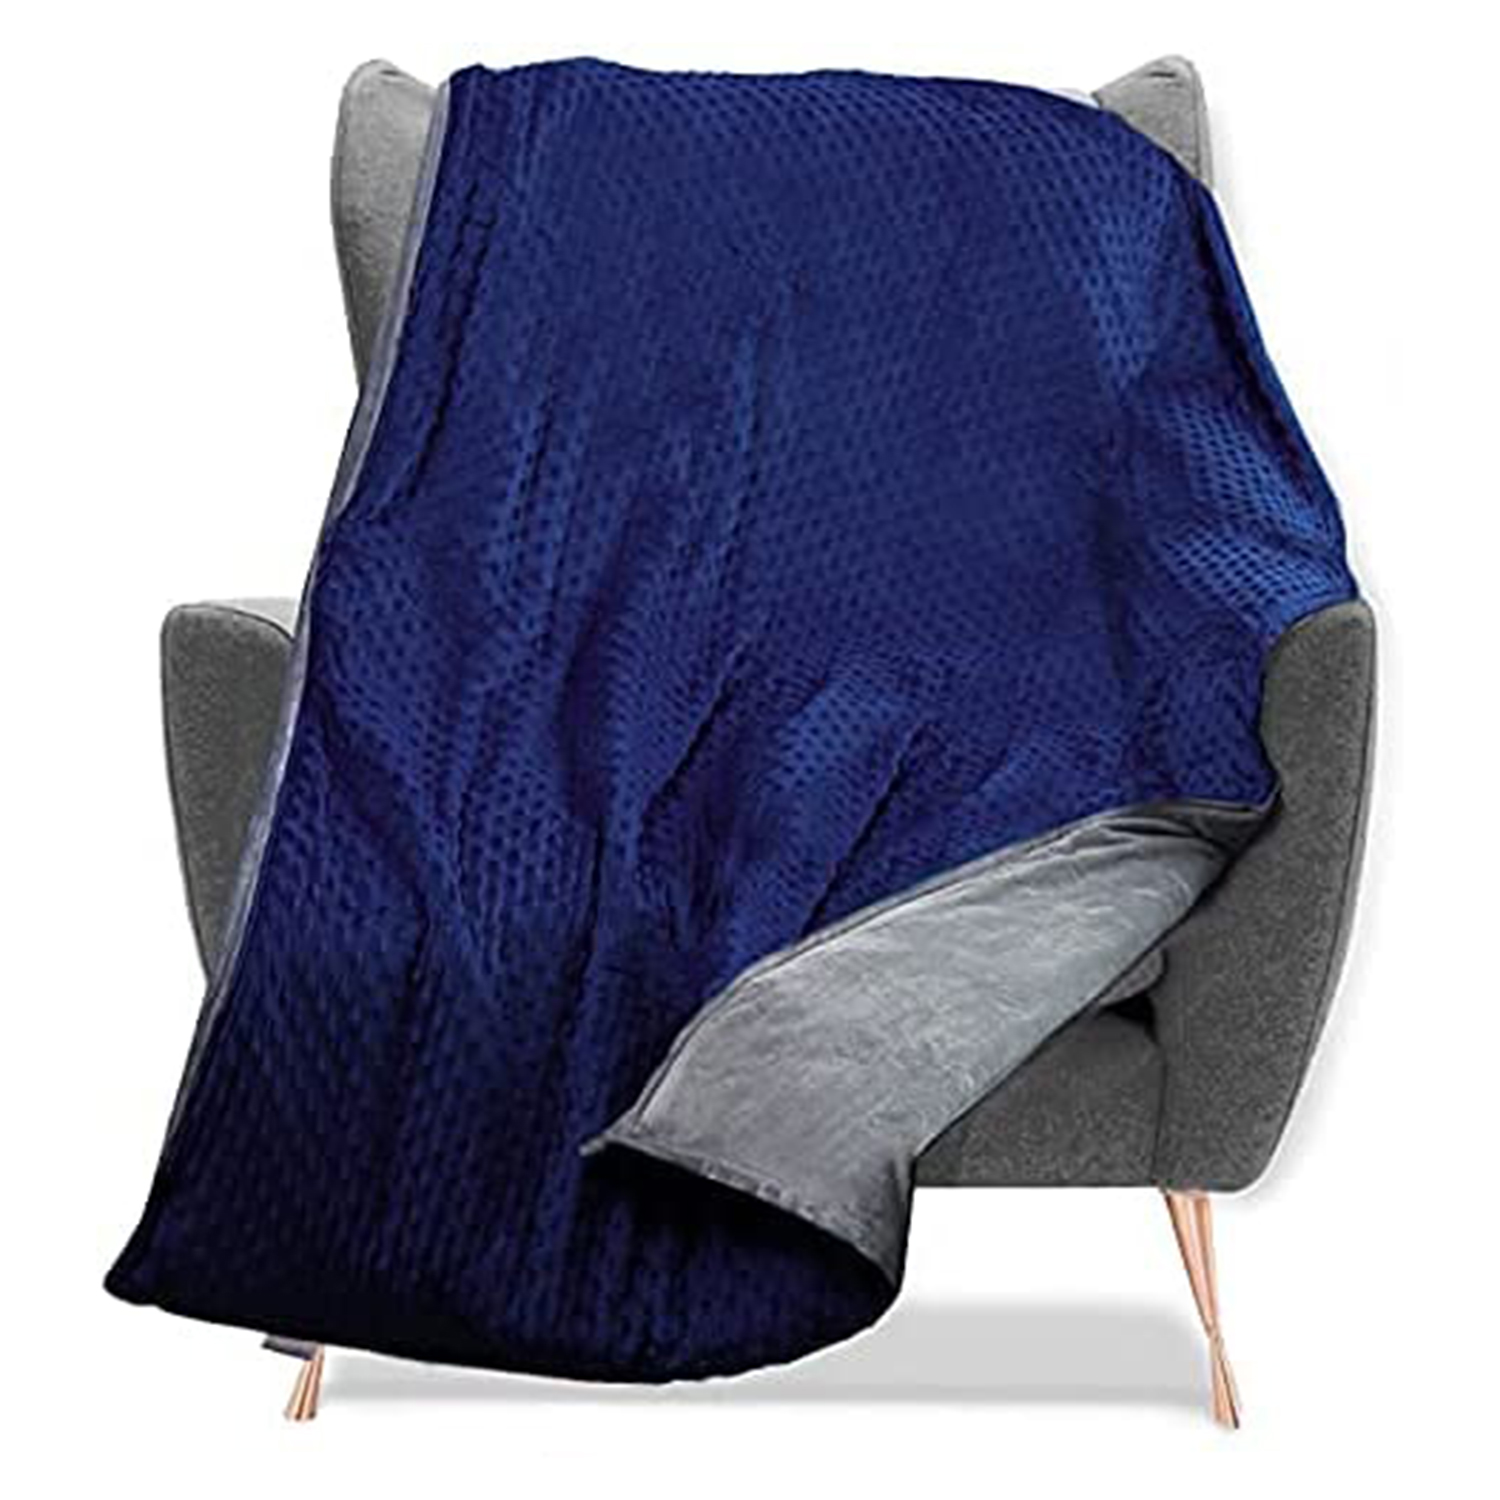 Quility Weighted Blanket with Soft Cover